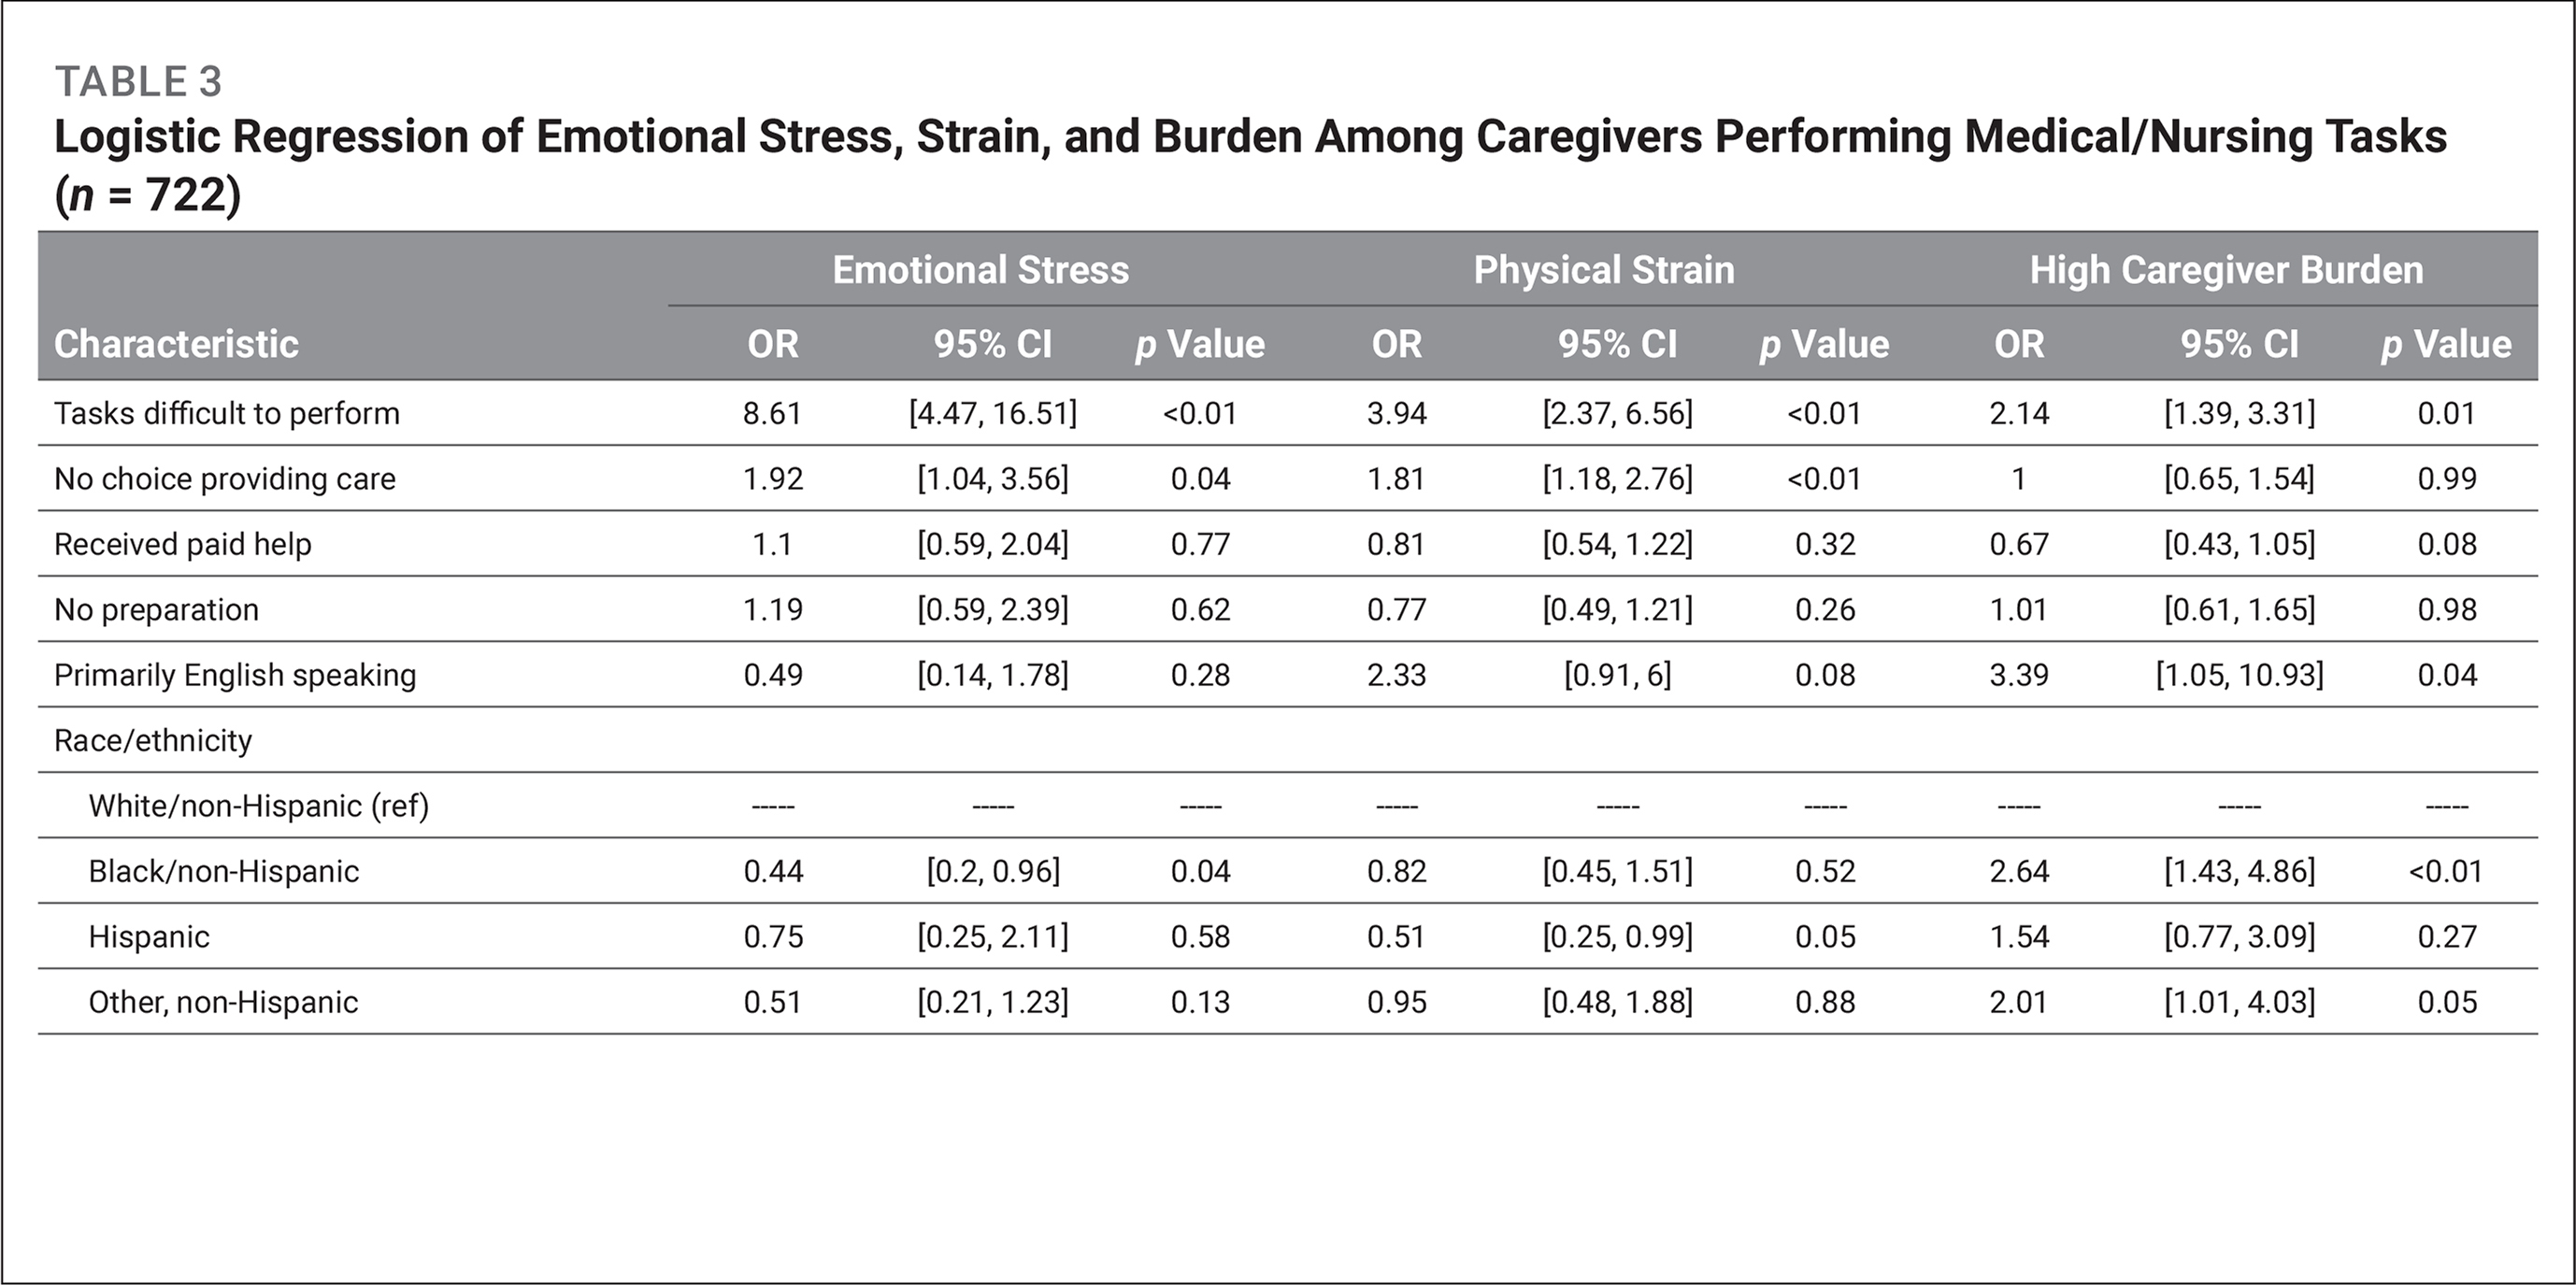 Logistic Regression of Emotional Stress, Strain, and Burden Among Caregivers Performing Medical/Nursing Tasks (n = 722)